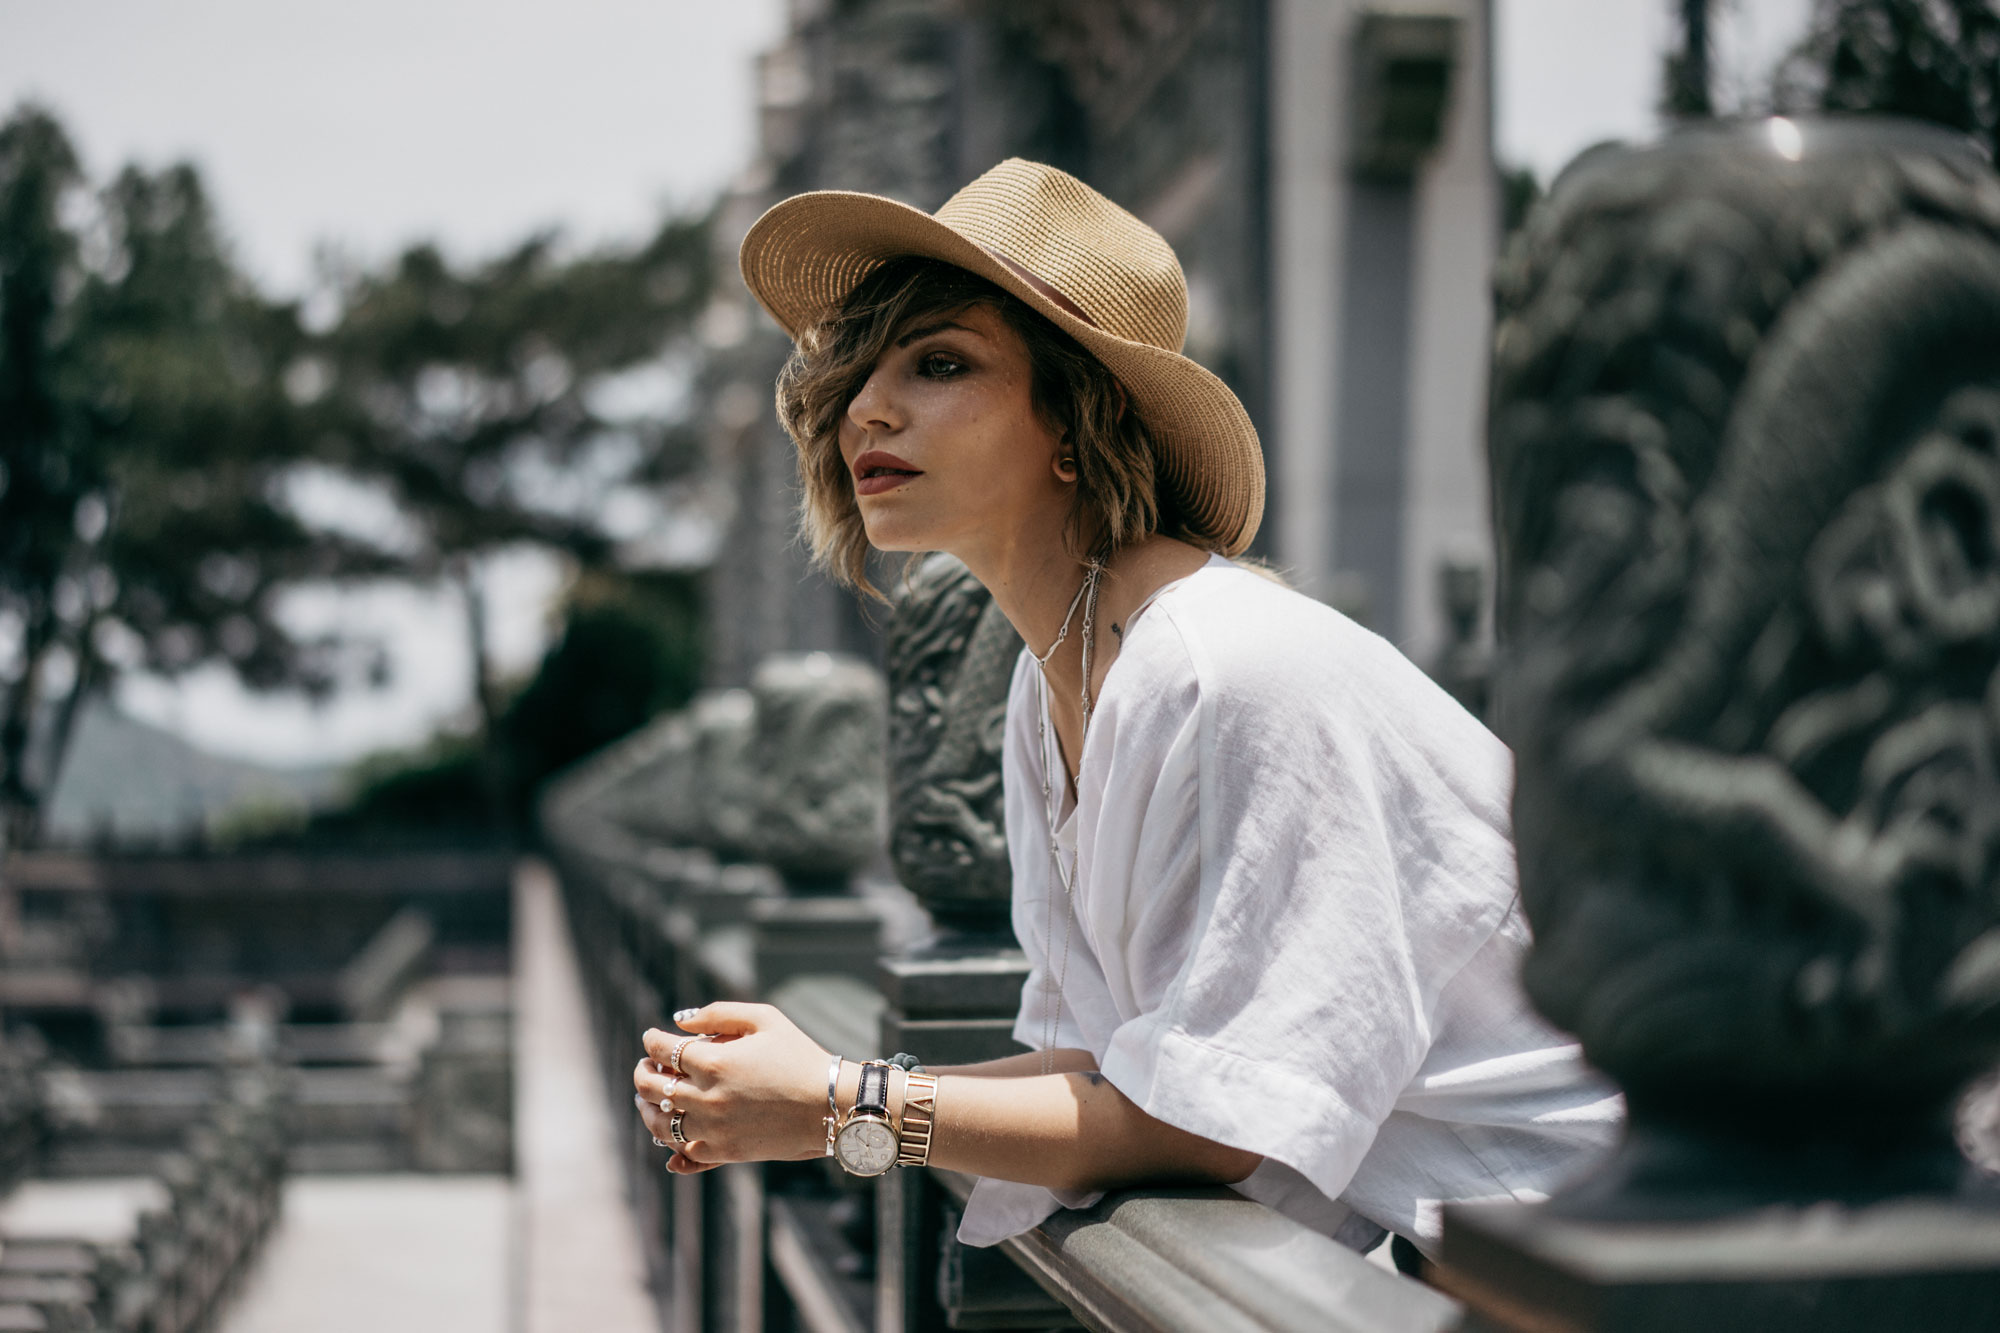 Masha Sedgwick, Slow the world down, Taiwan, Outfit, how to style a white blouse, summer holiday outfit, casual, relaxed, Berlin fashion blogger